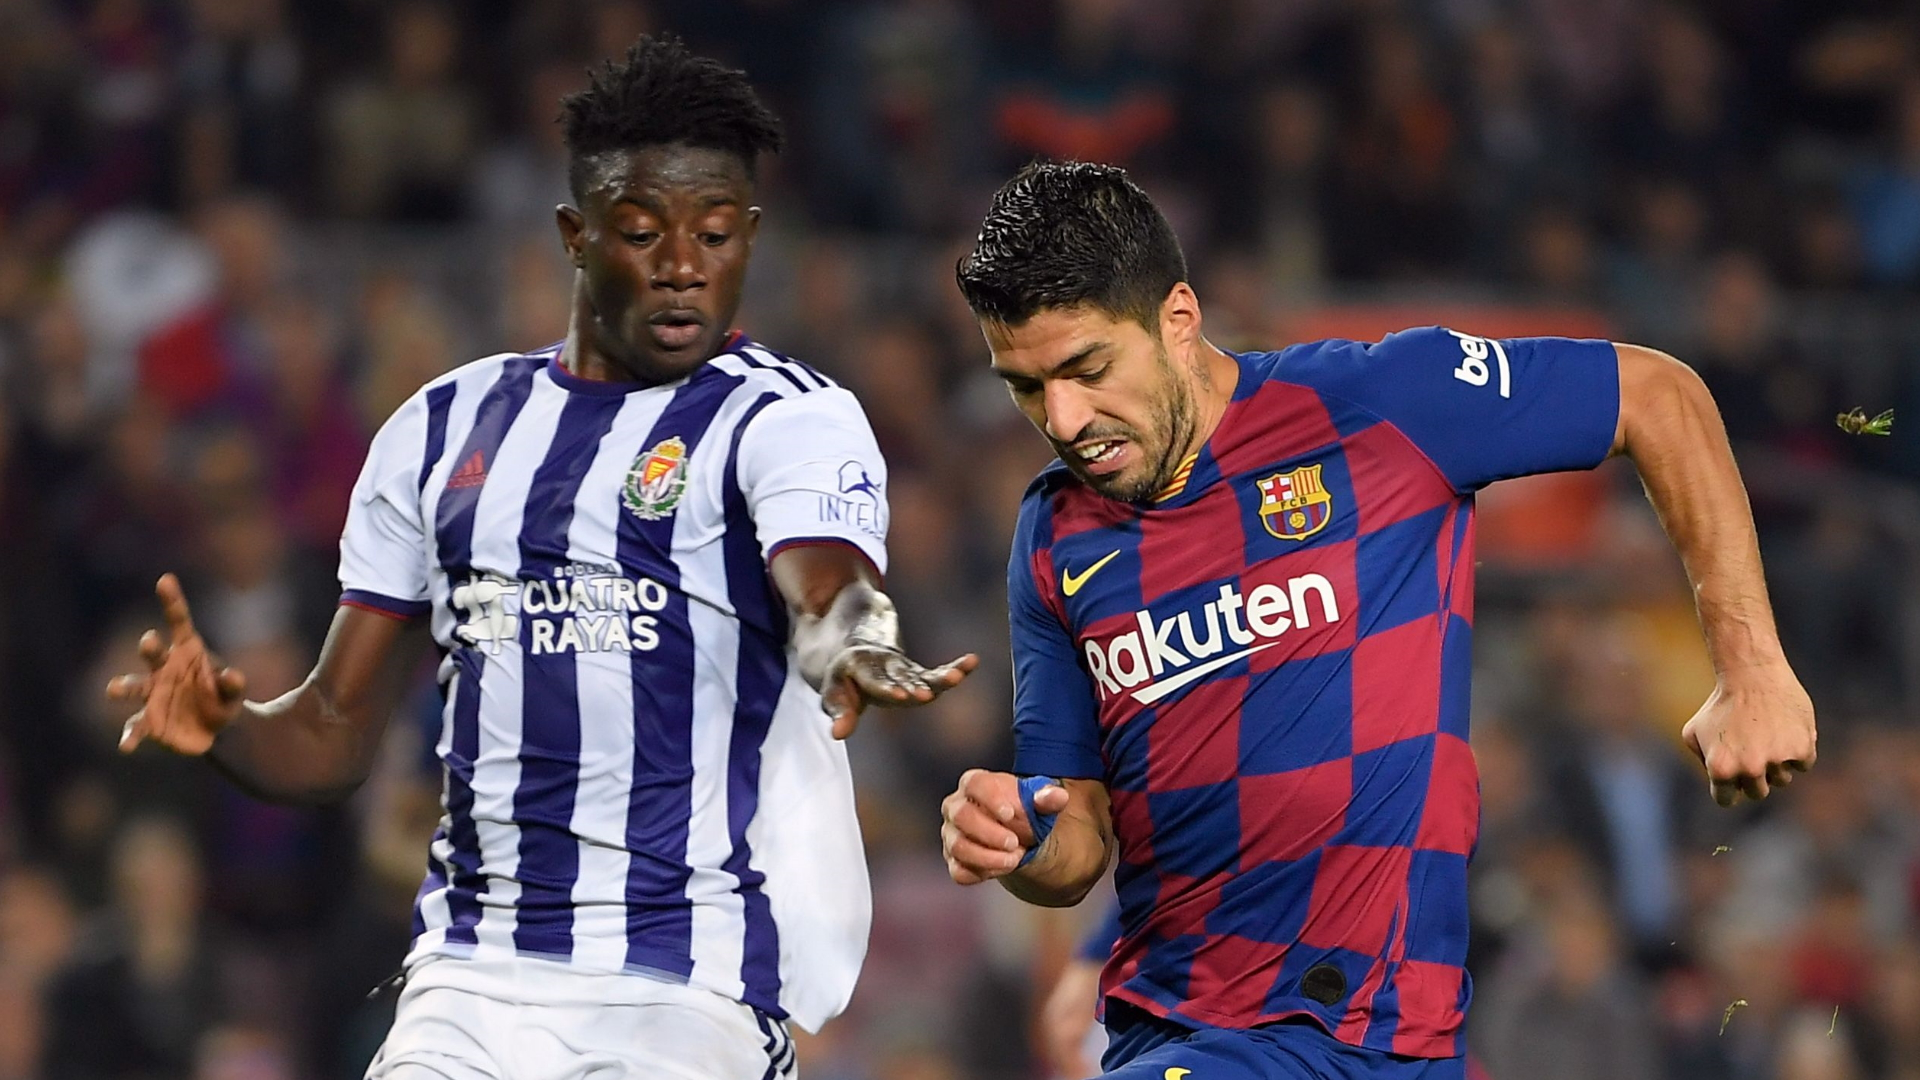 Valladolid hopeful Mohammed Salisu will stay amid transfer ...